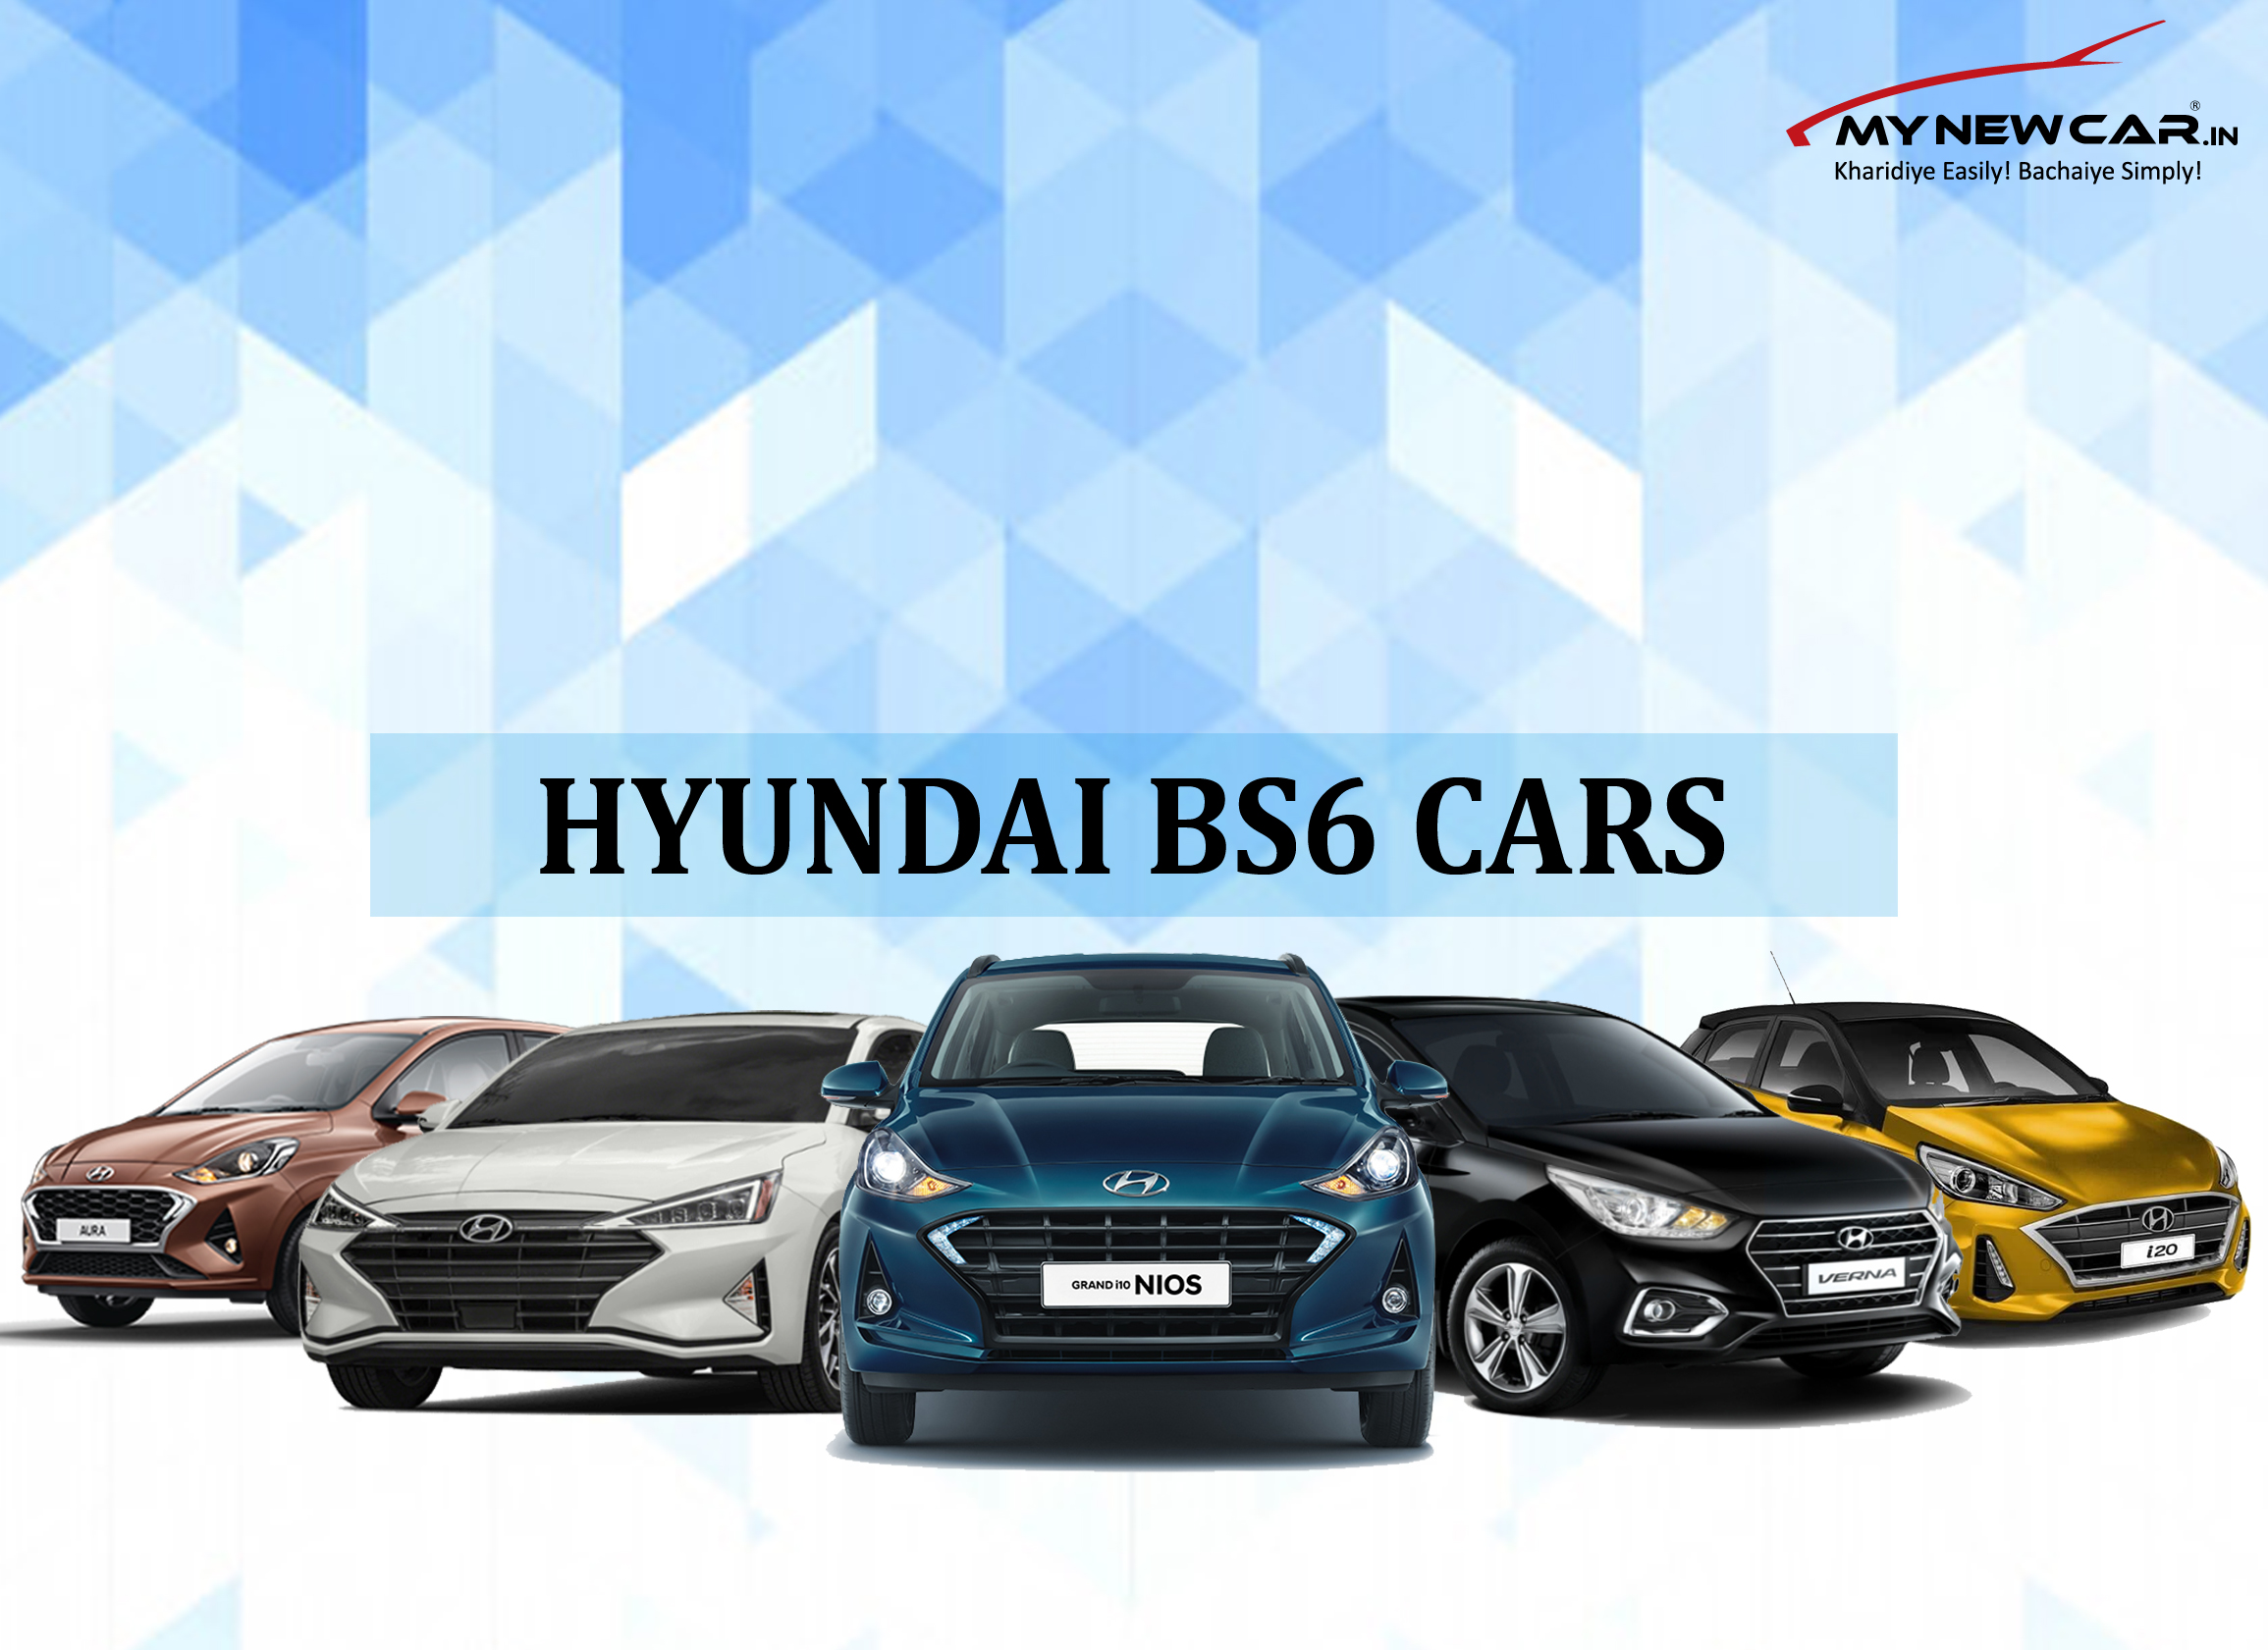 List of BS6 Hyundai Cars